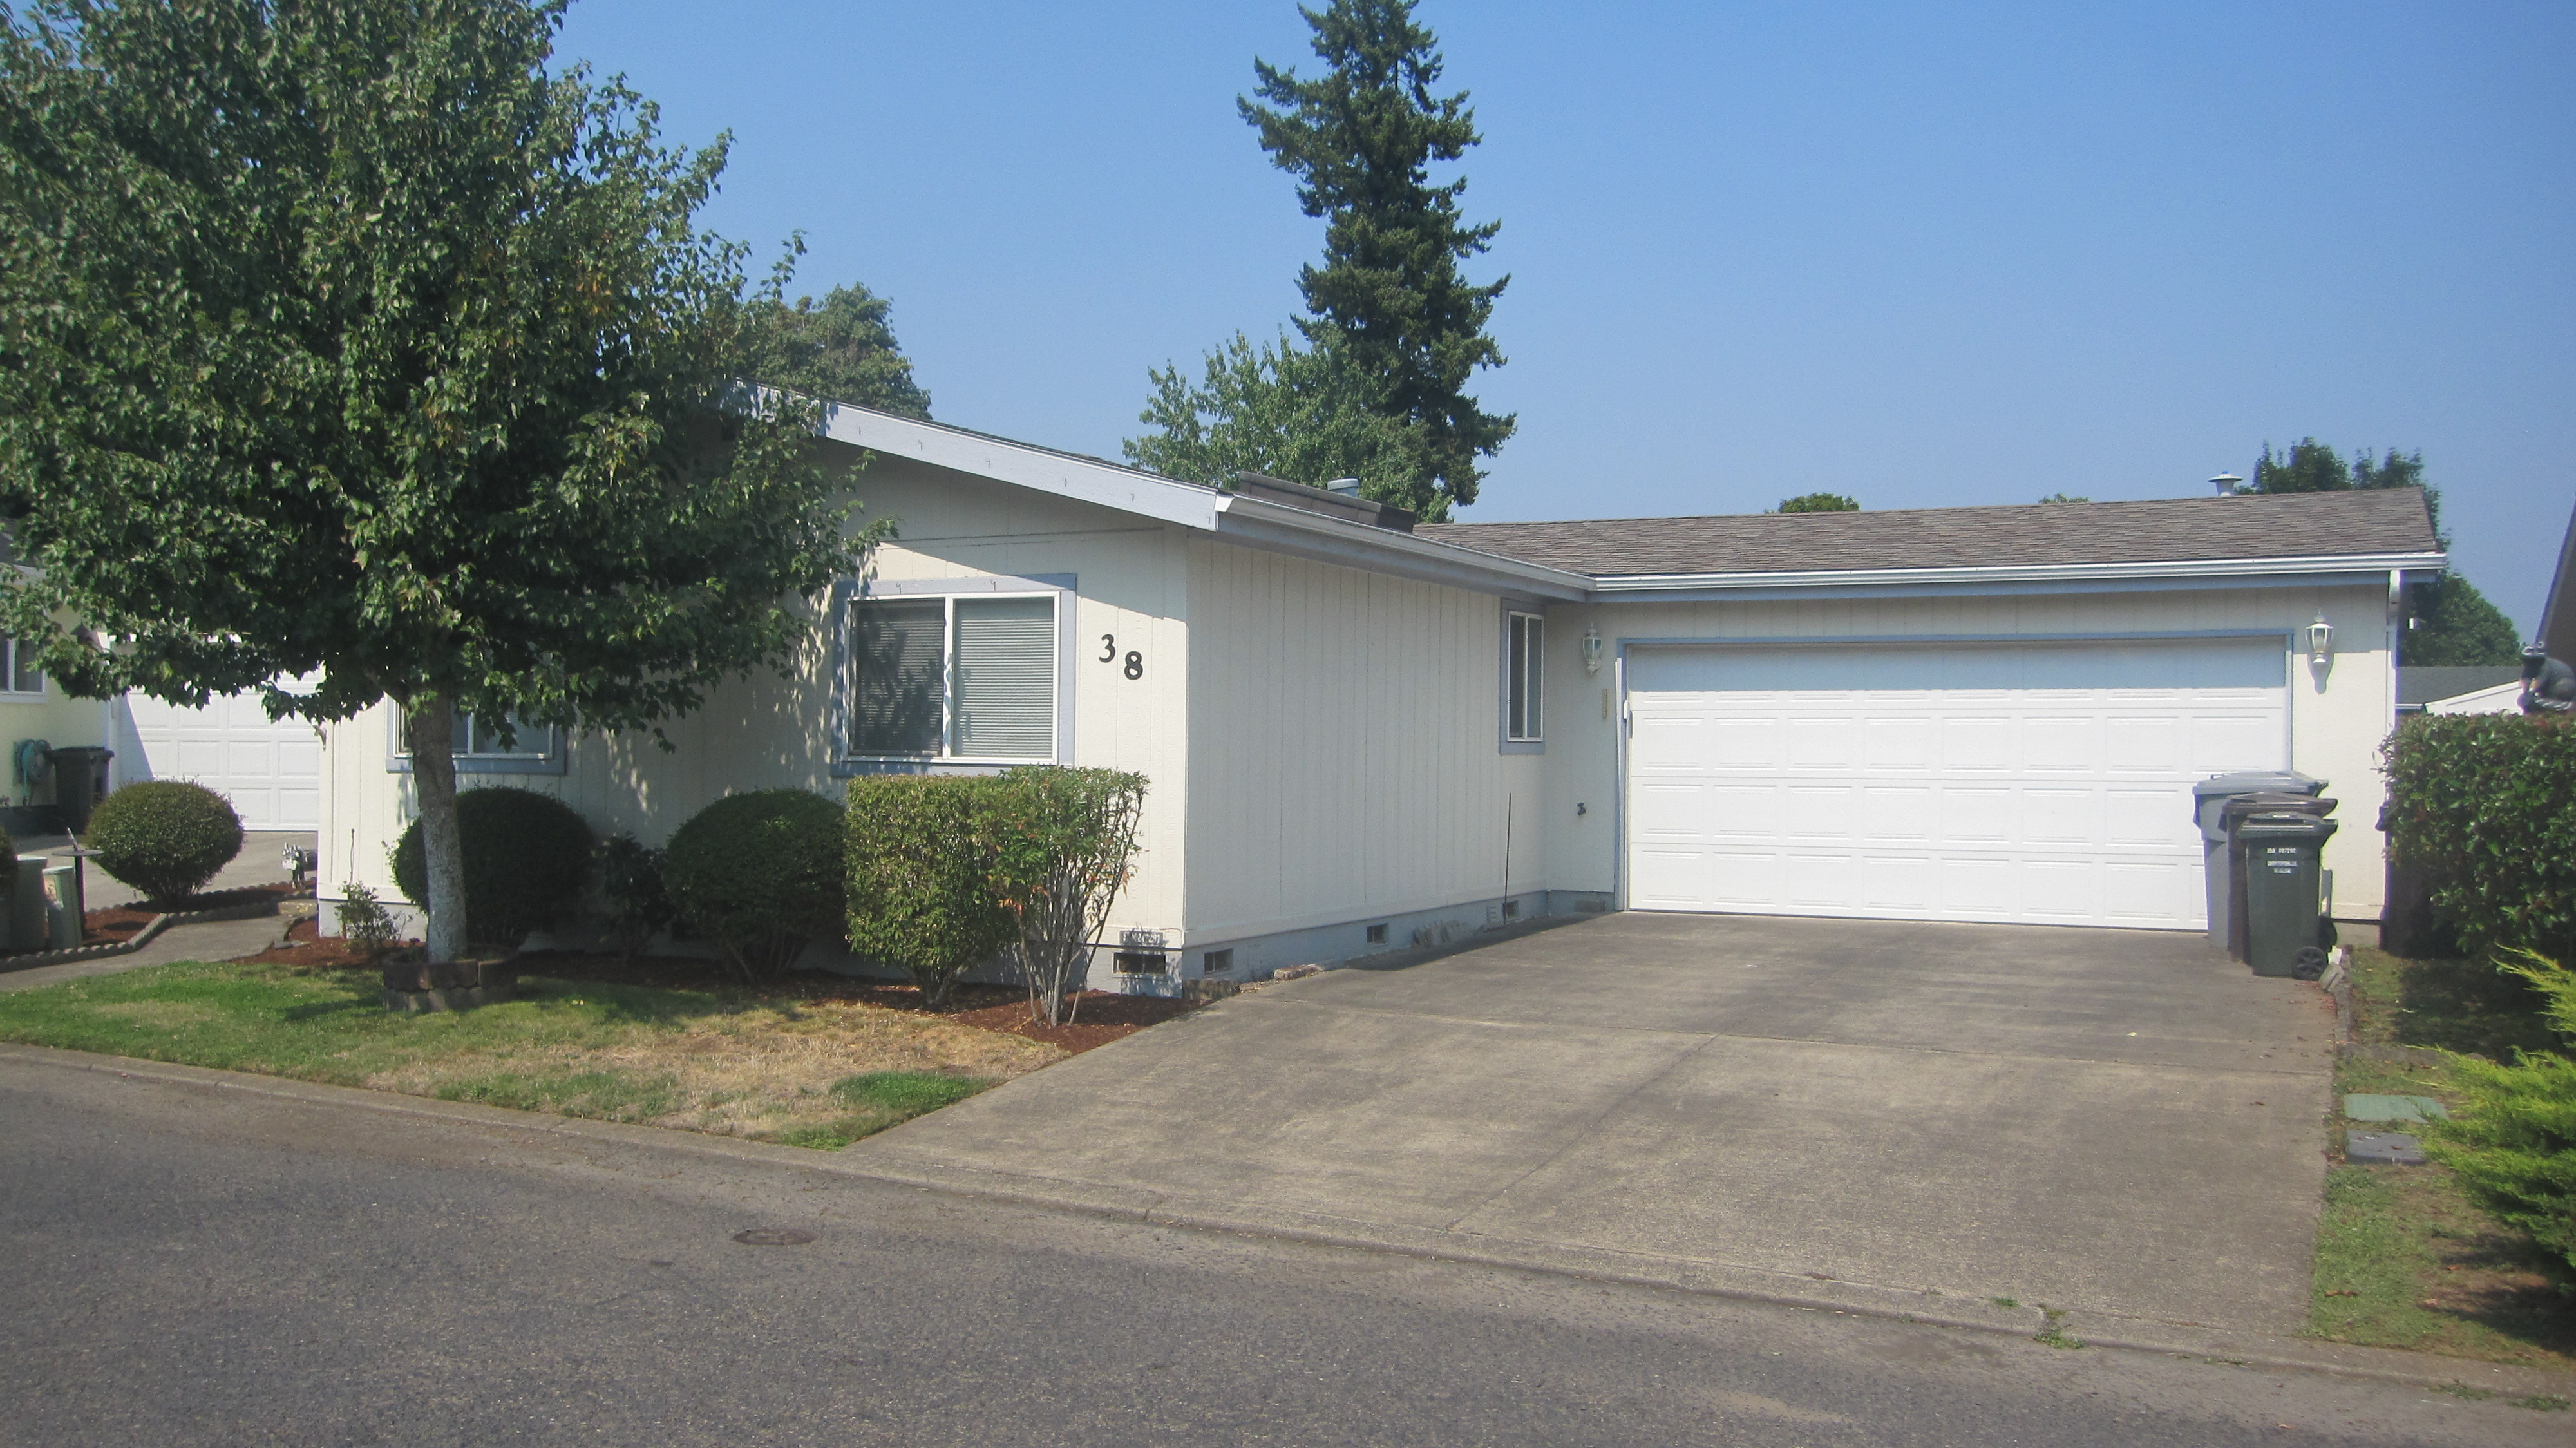 1997 Fleetwood in Canby